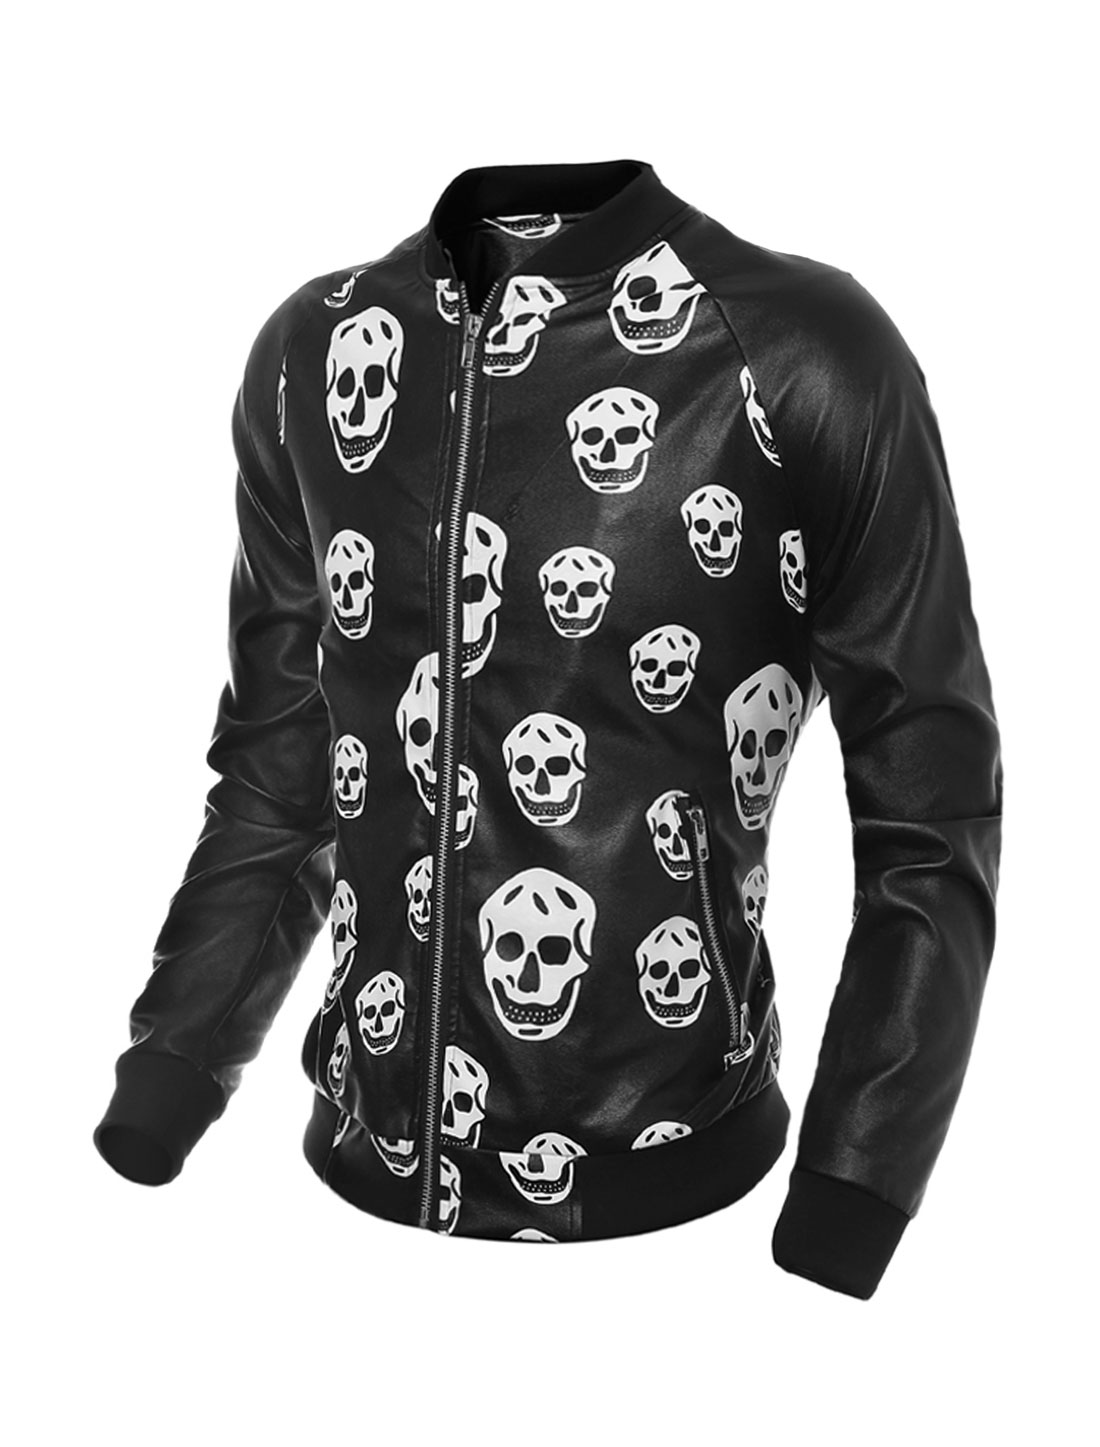 Man Collared Zippered Pockets Skulls PU Jacket Black M